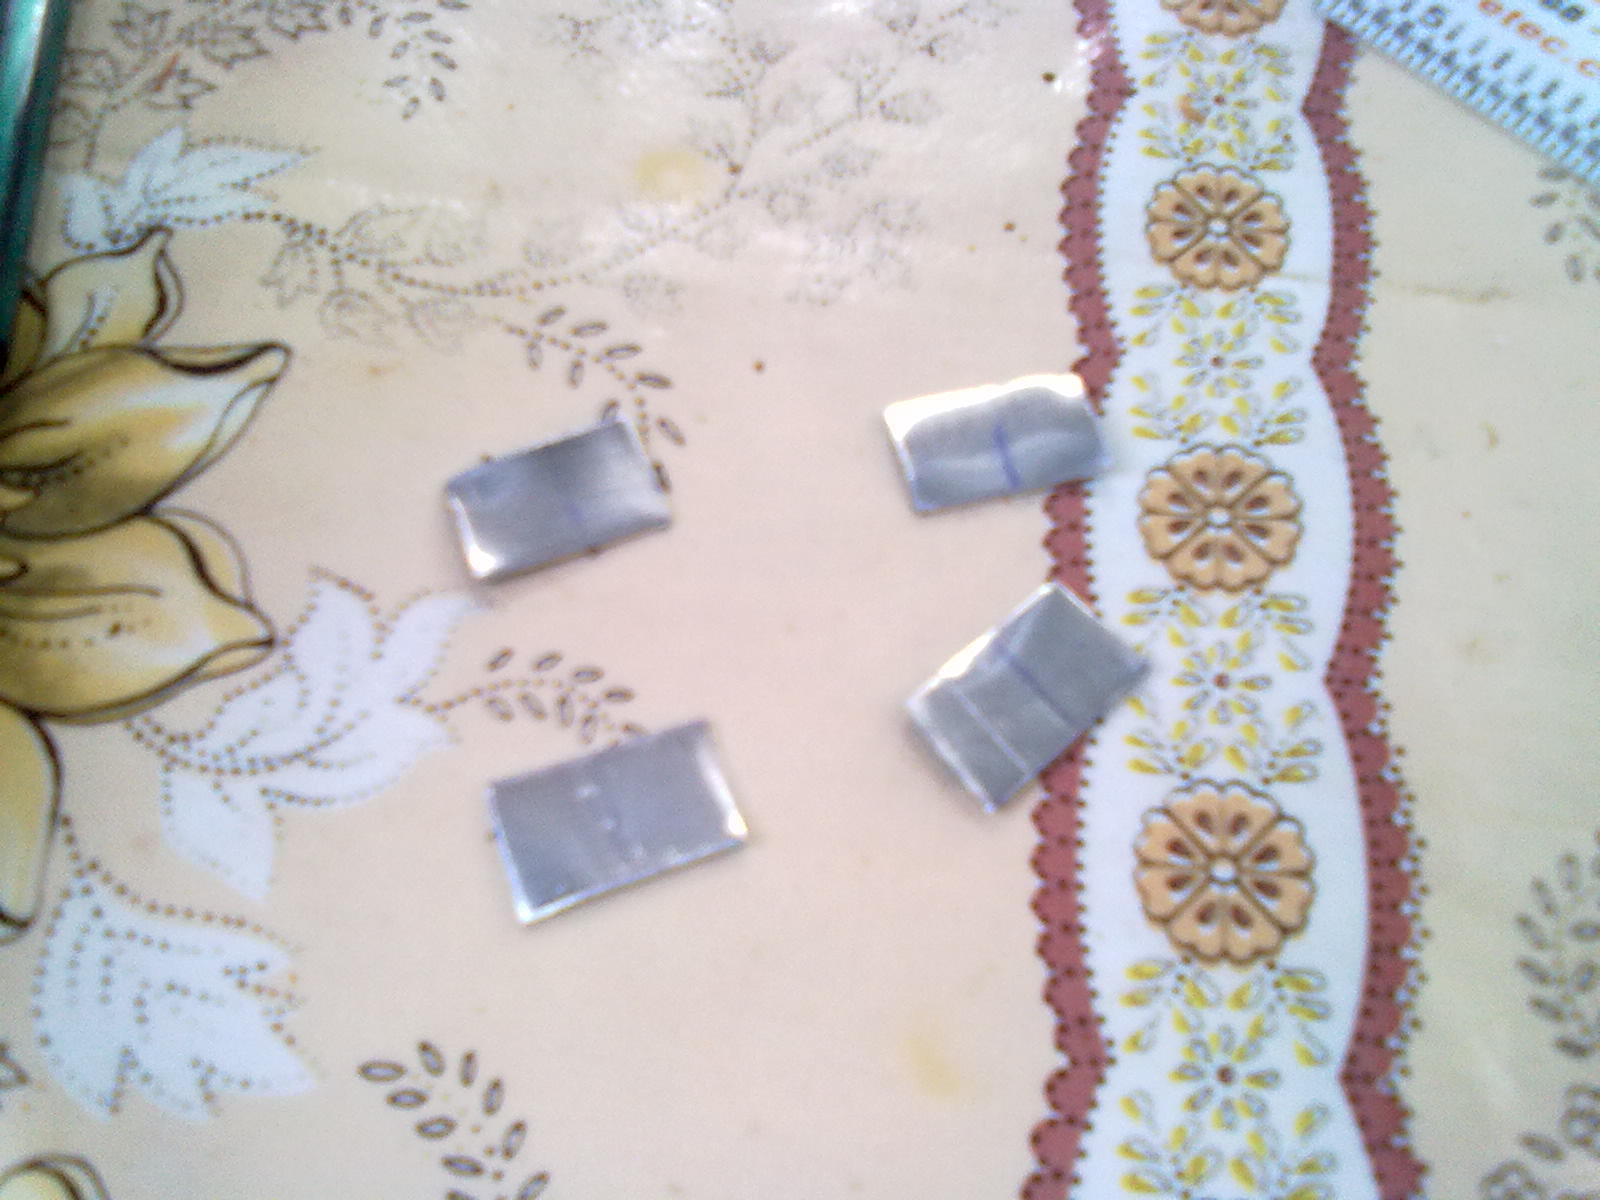 Picture of Fabricate the Small Metallic Parts